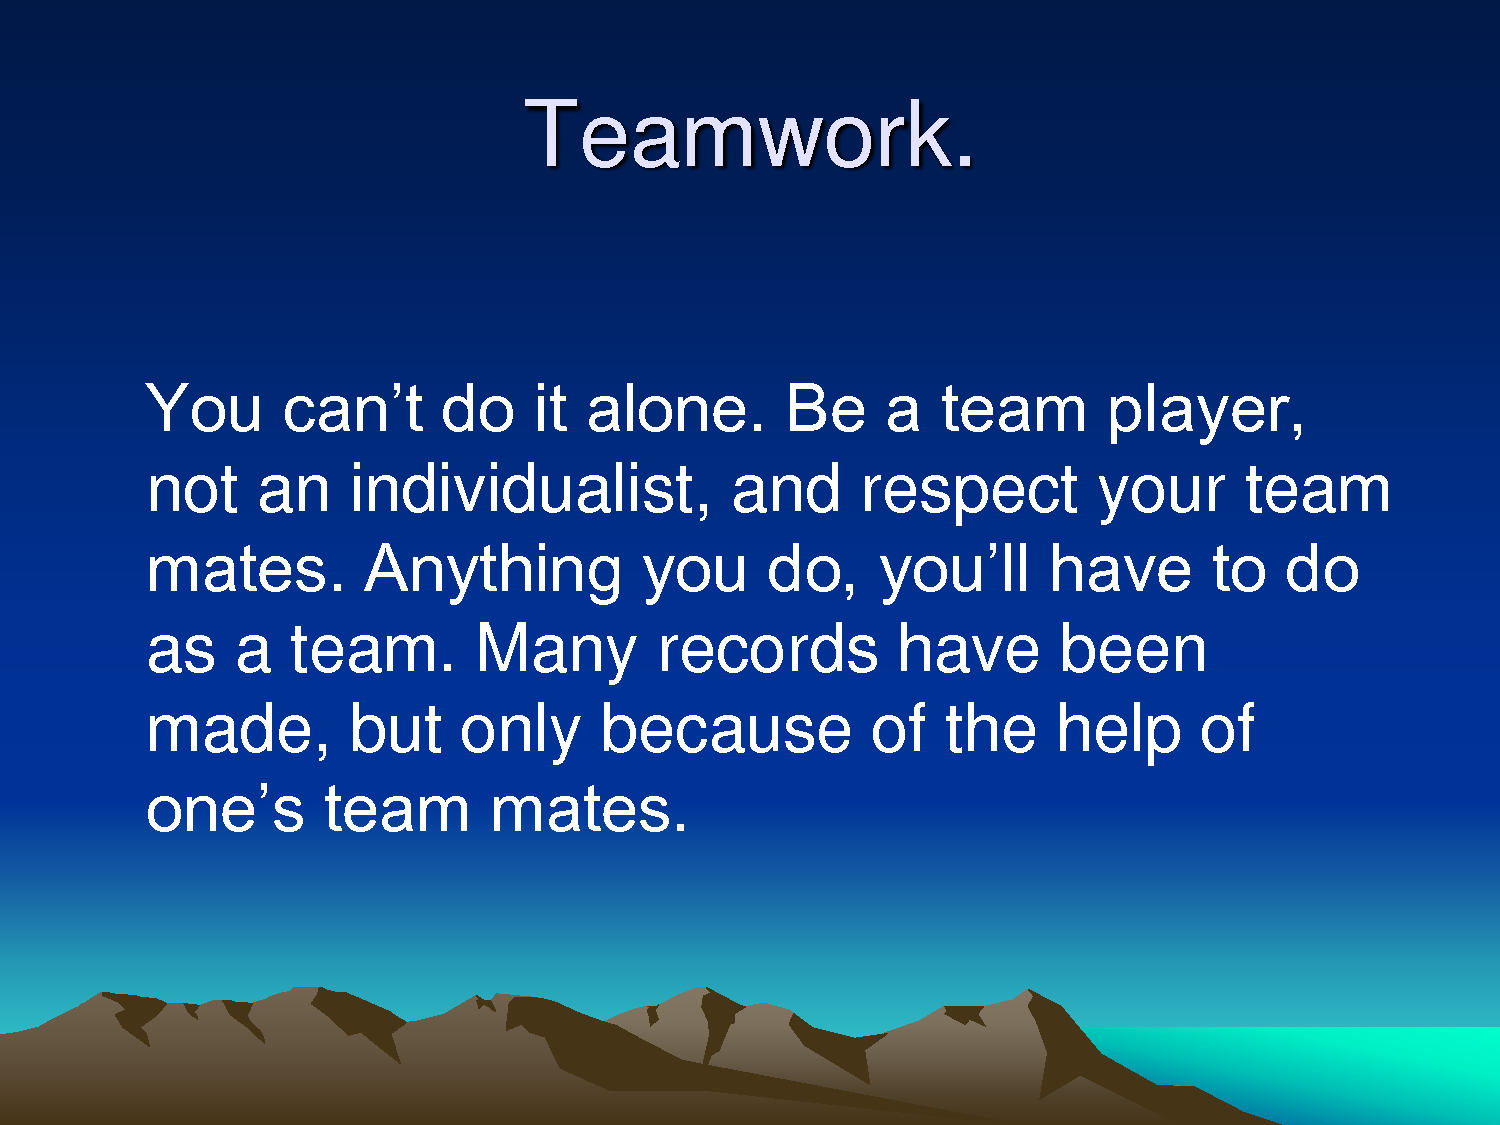 Teamwork Quotes For Work Teamwork Is The Ability To Work Together Toward A Commaon